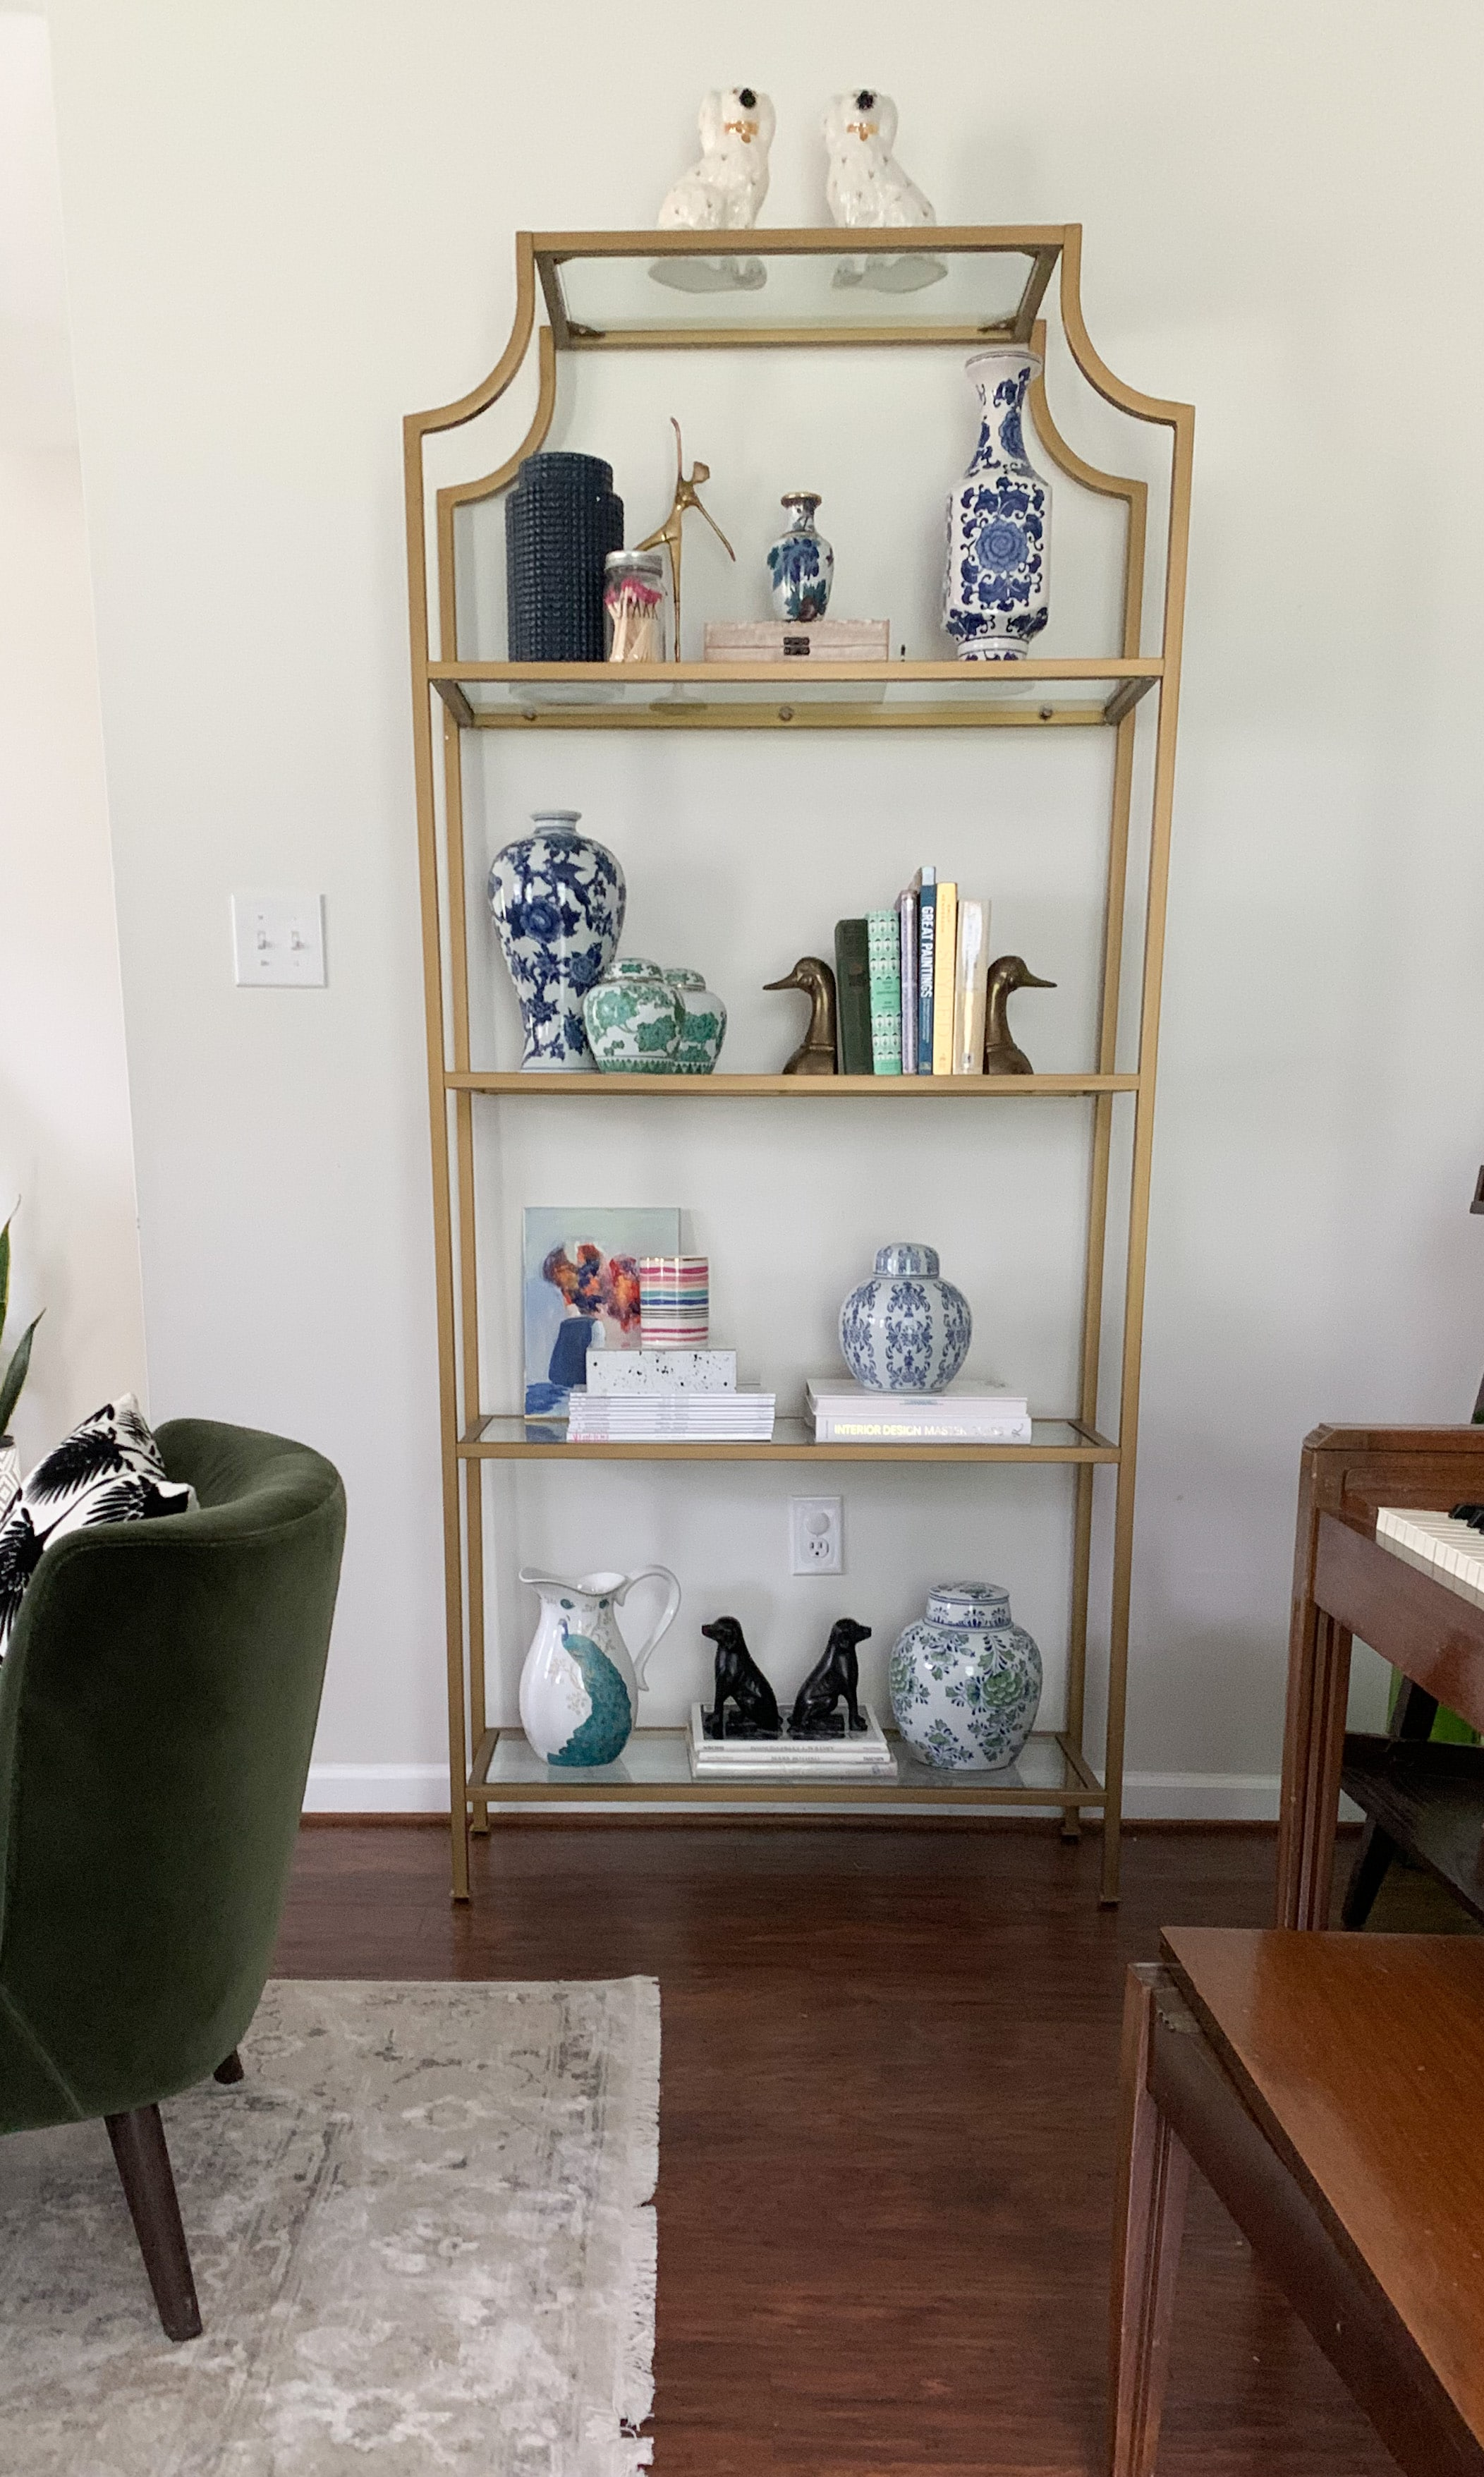 How to Style an Etagere Like a Designer: The Perfect Formula